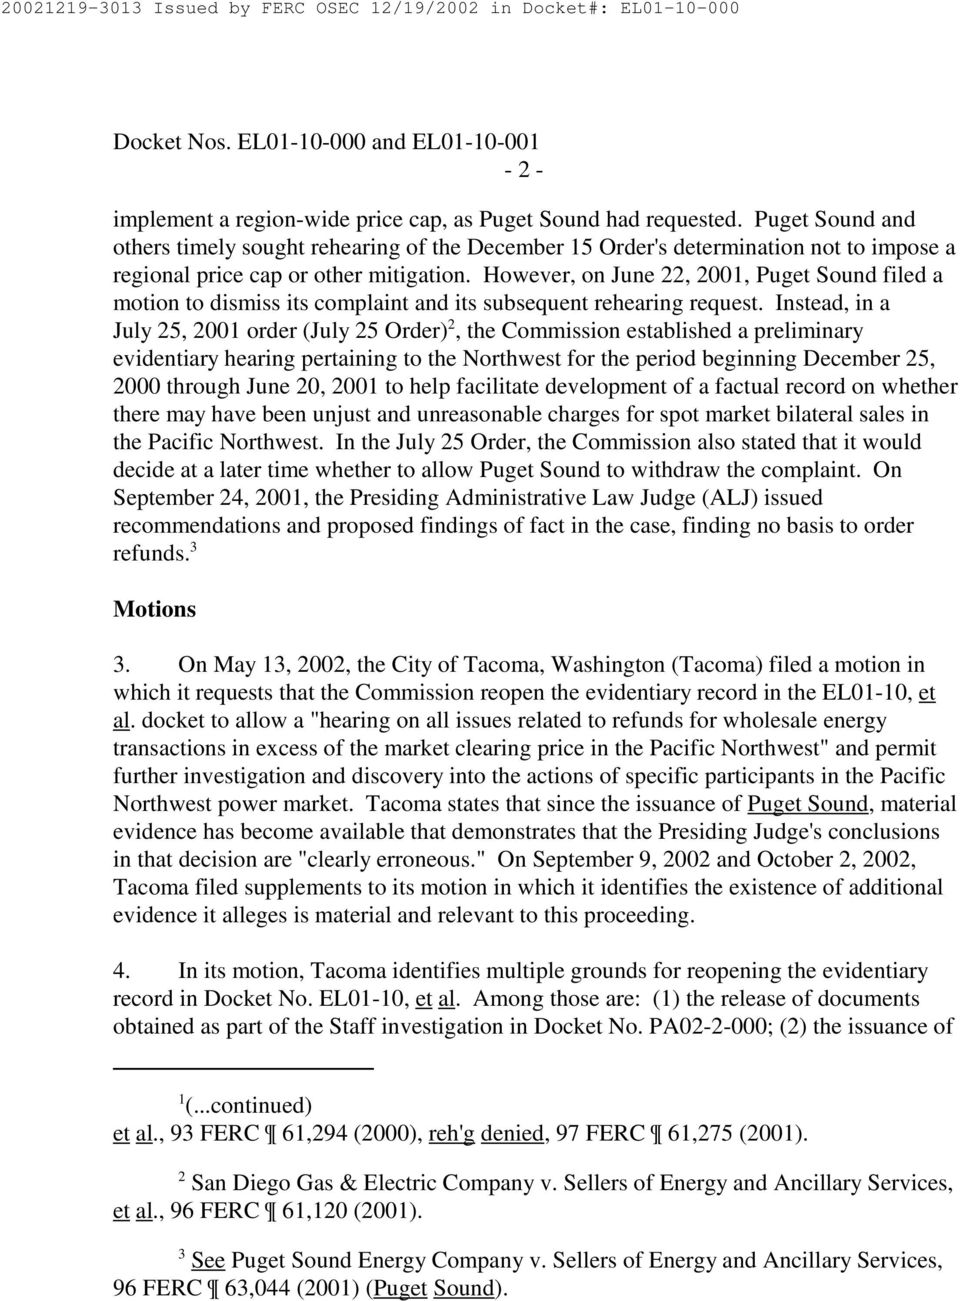 However, on June 22, 2001, Puget Sound filed a motion to dismiss its complaint and its subsequent rehearing request.